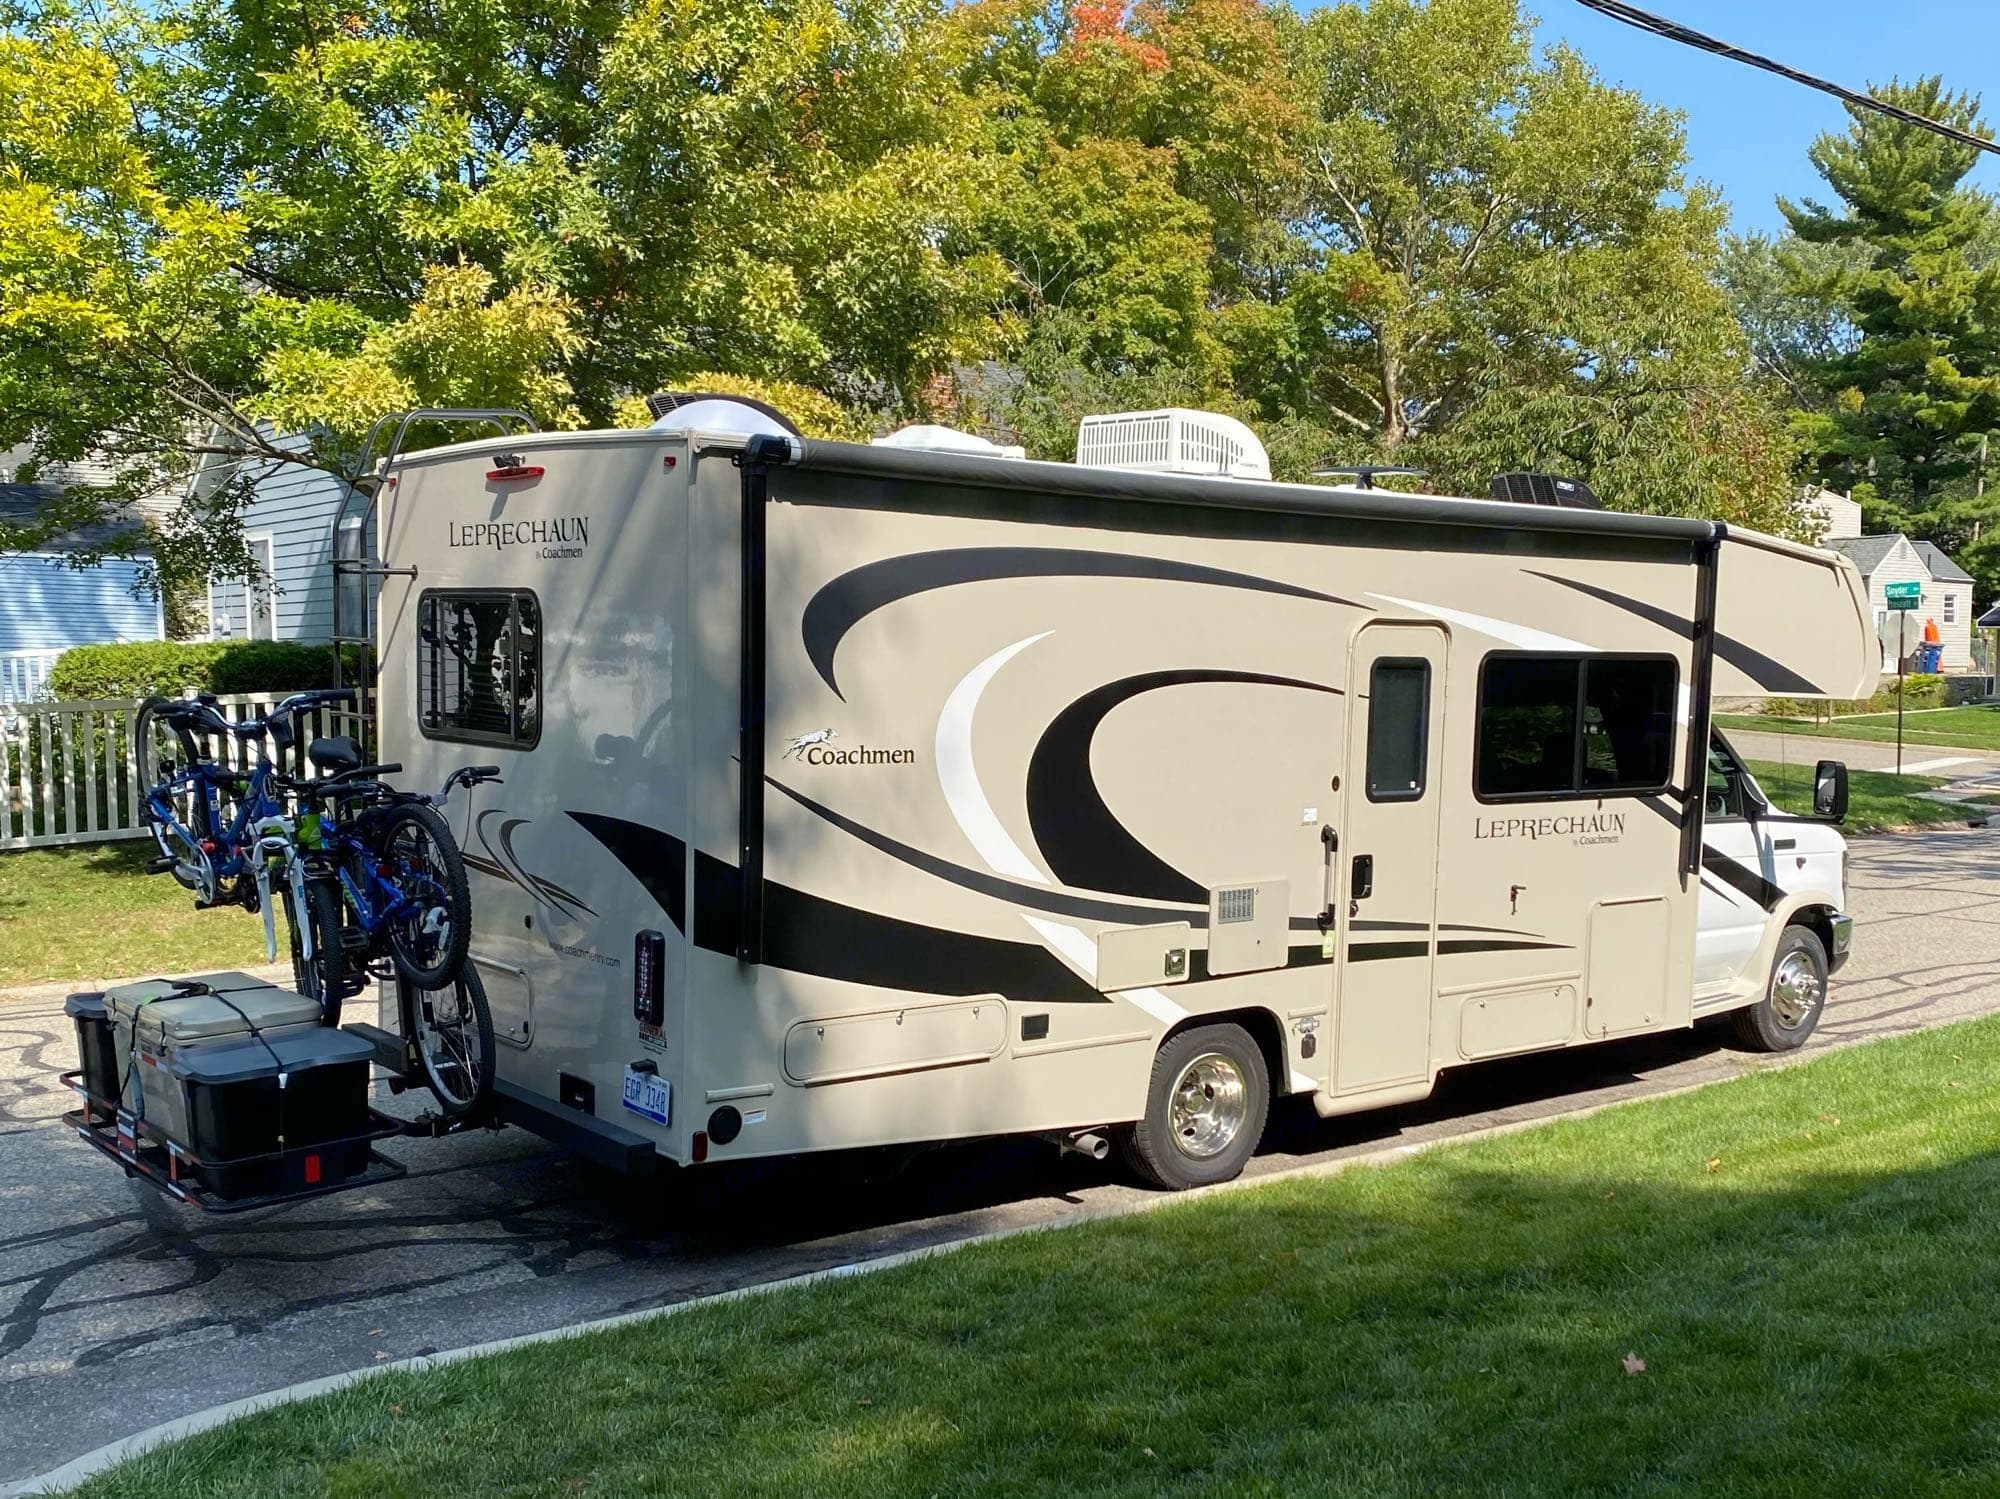 Fully loaded with bike rack and cargo carrier.. Coachmen Leprechaun 2021